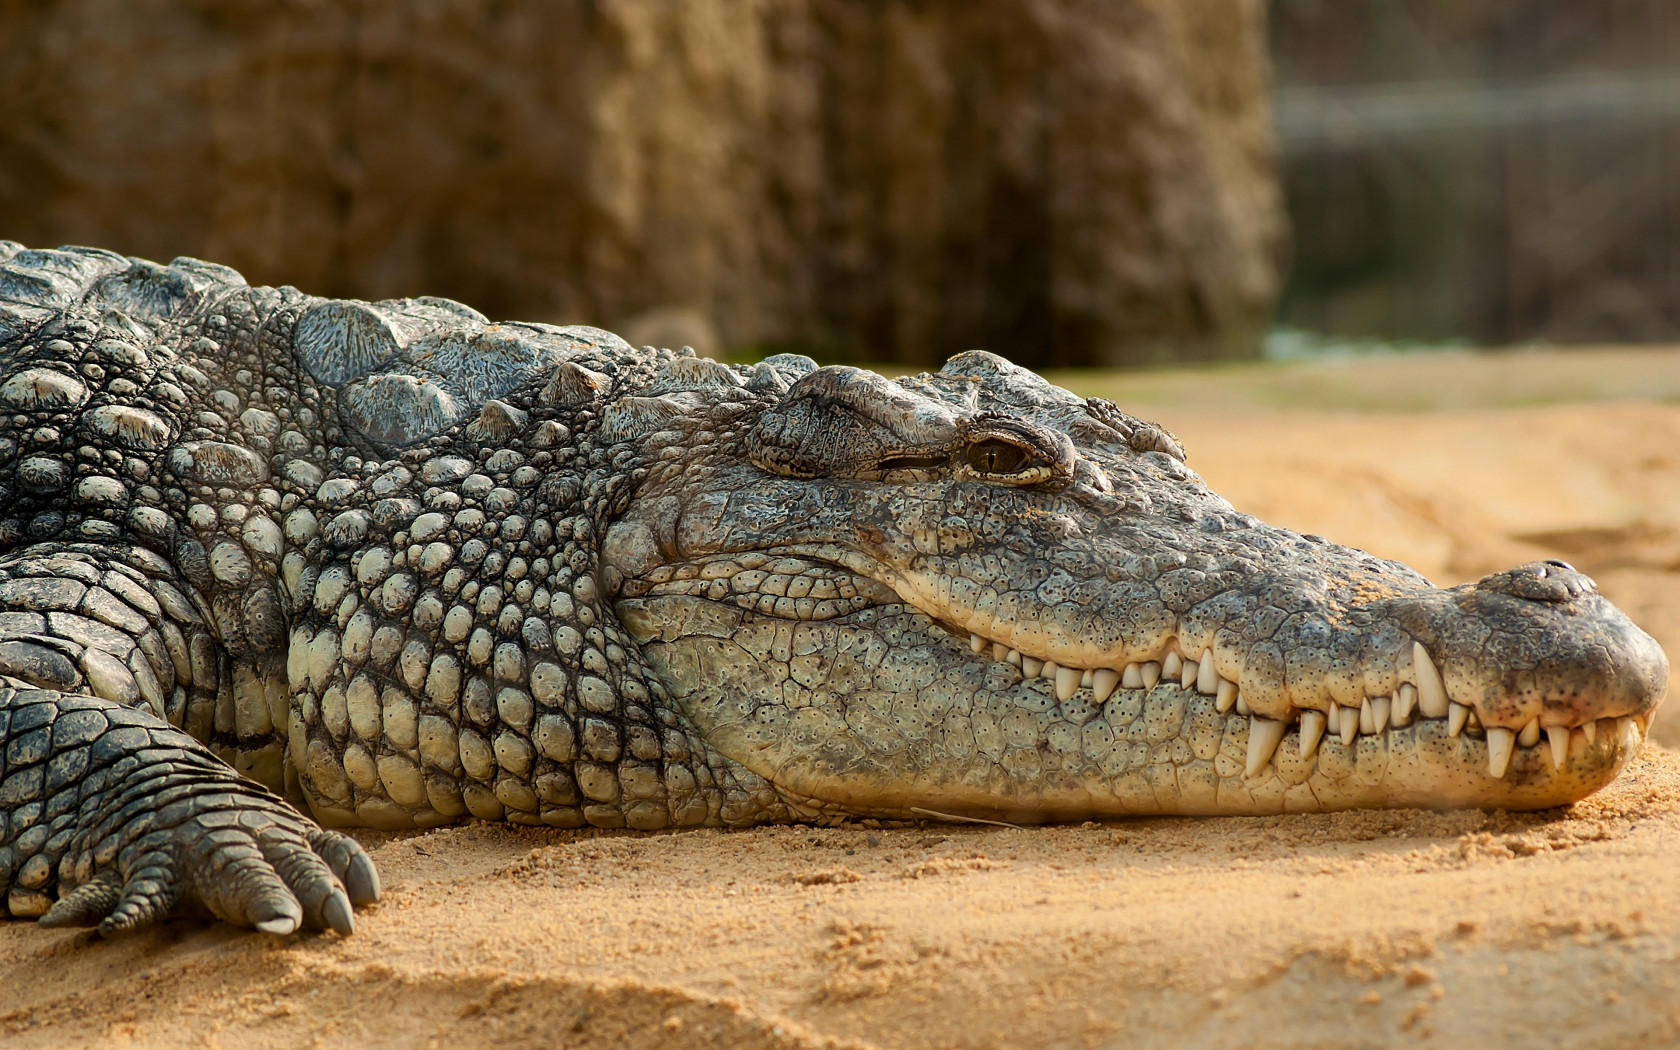 Nile crocodile | 1680x1050 wallpaper